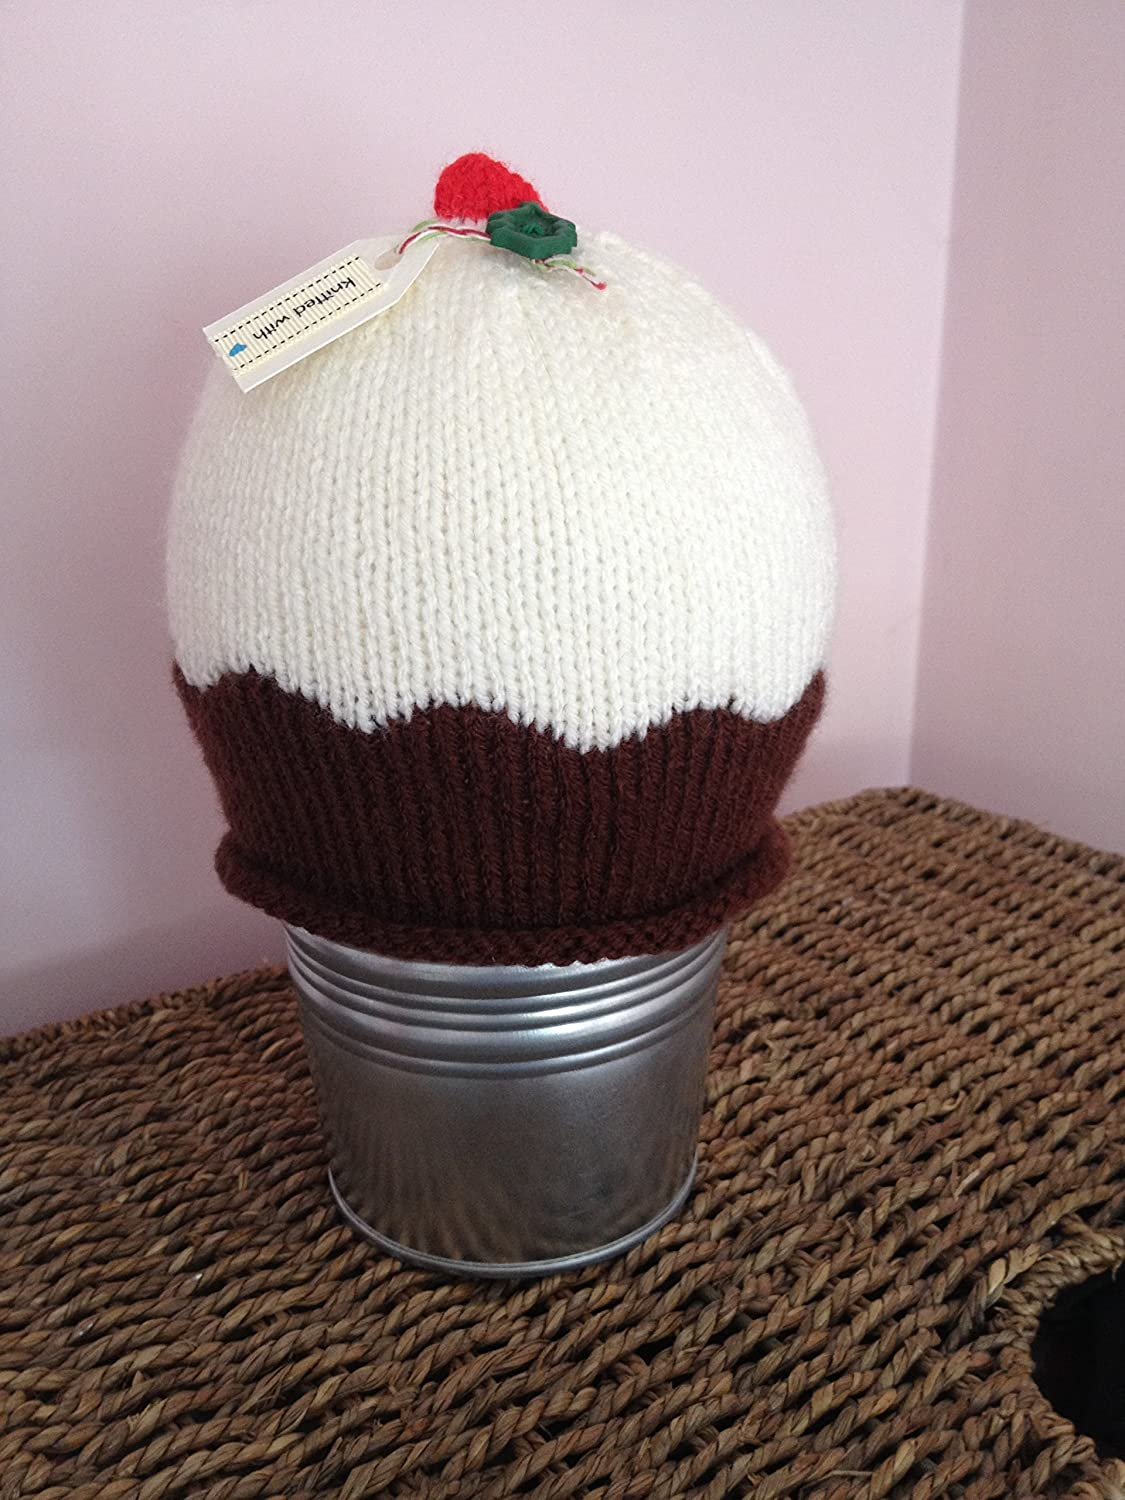 Christmas pudding hand-knitted hat - sizes 0-6 months to adult